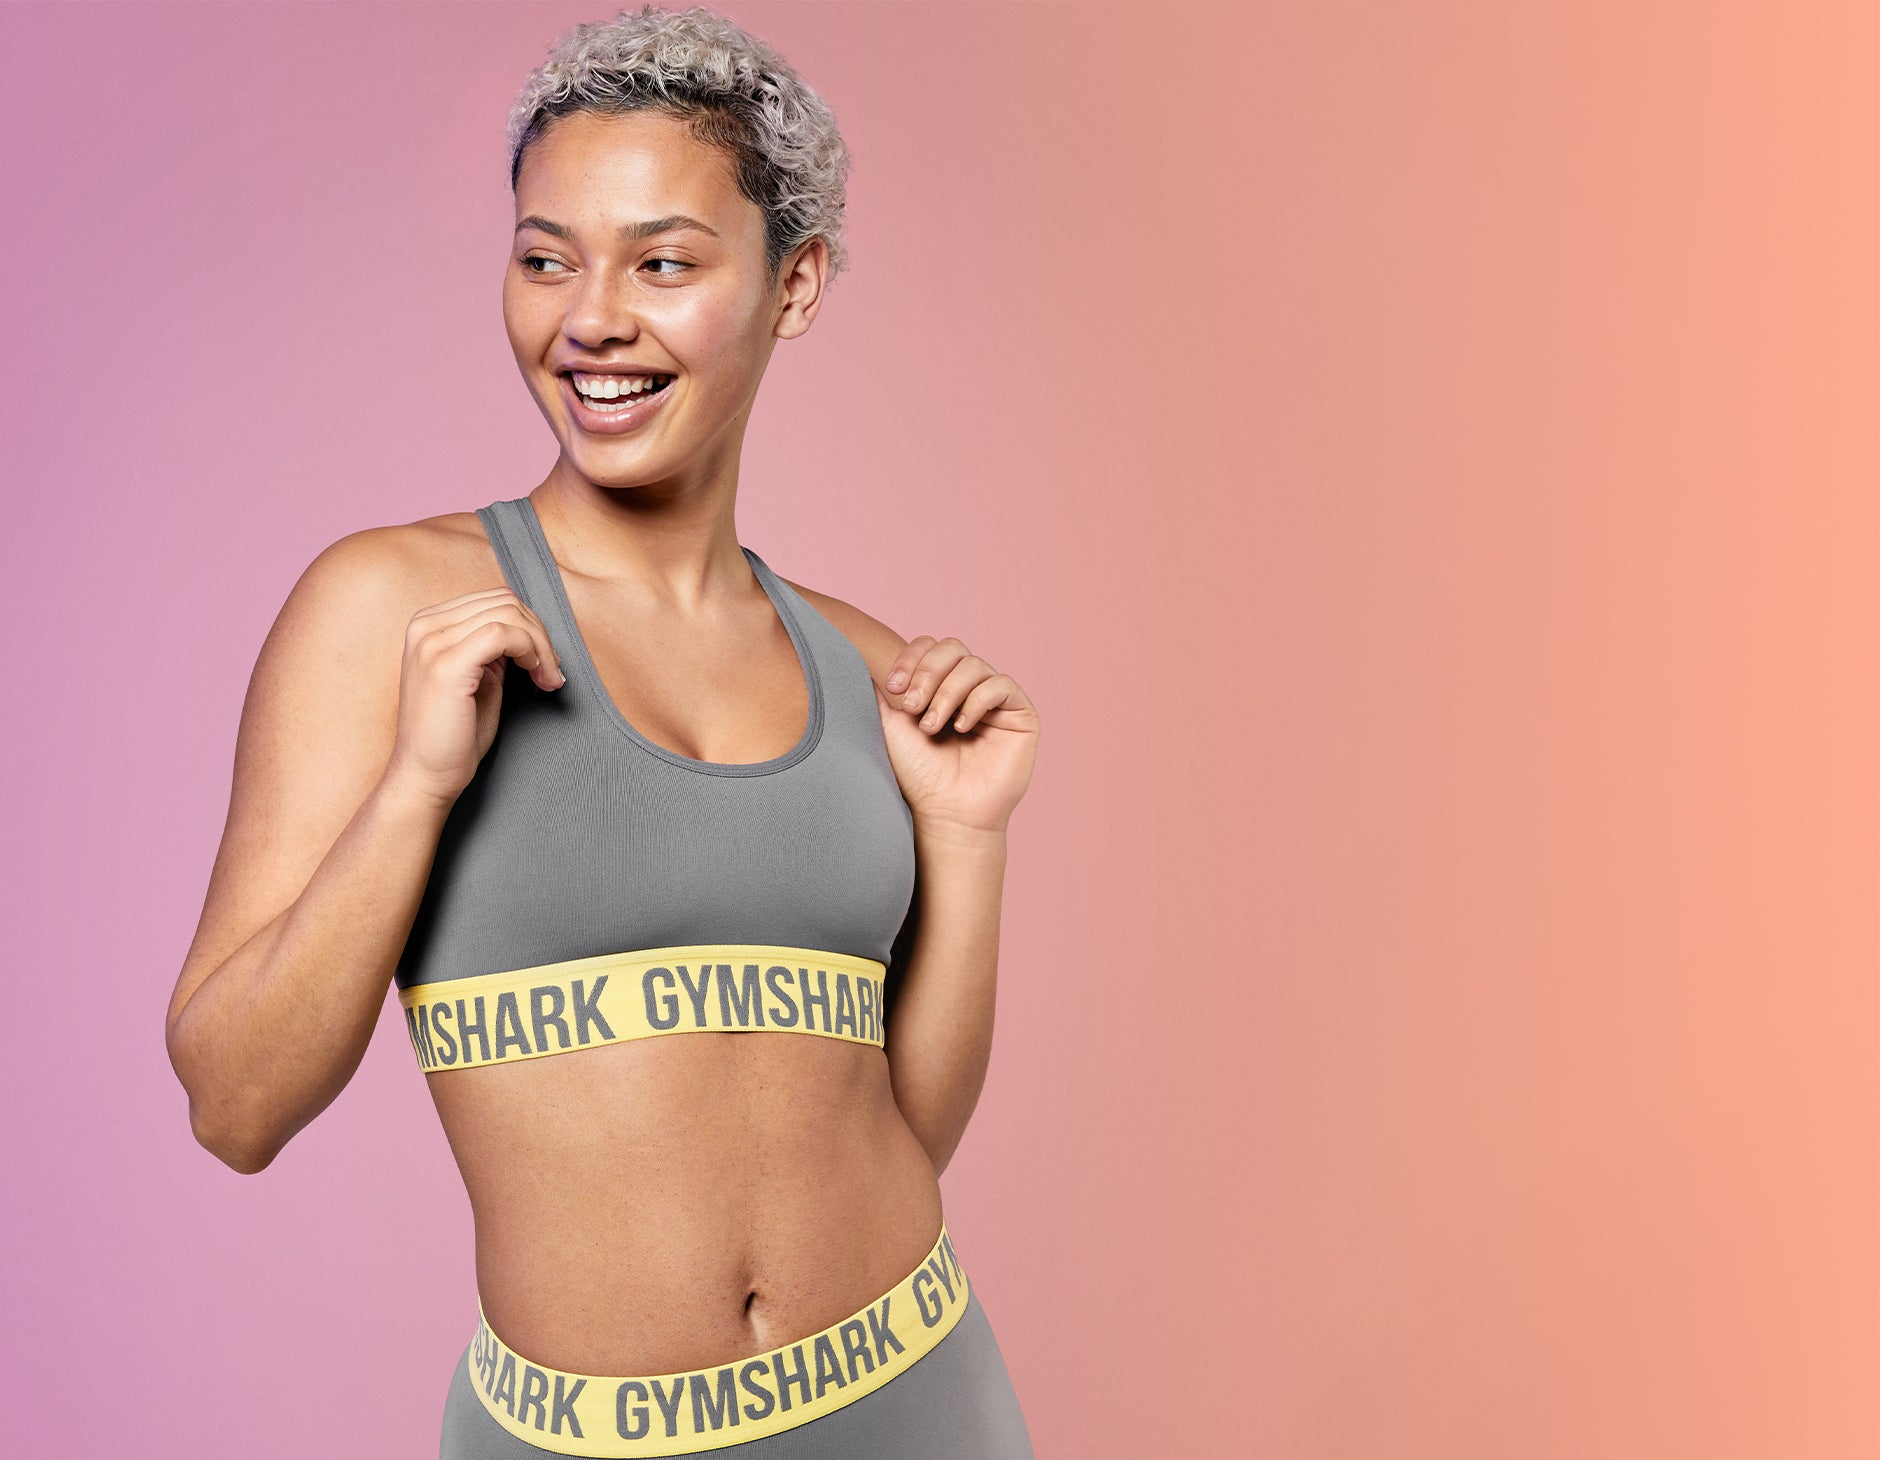 Female Model wearing Fit Seamless Sports Bra and Shorts in Charcoal/Yellow